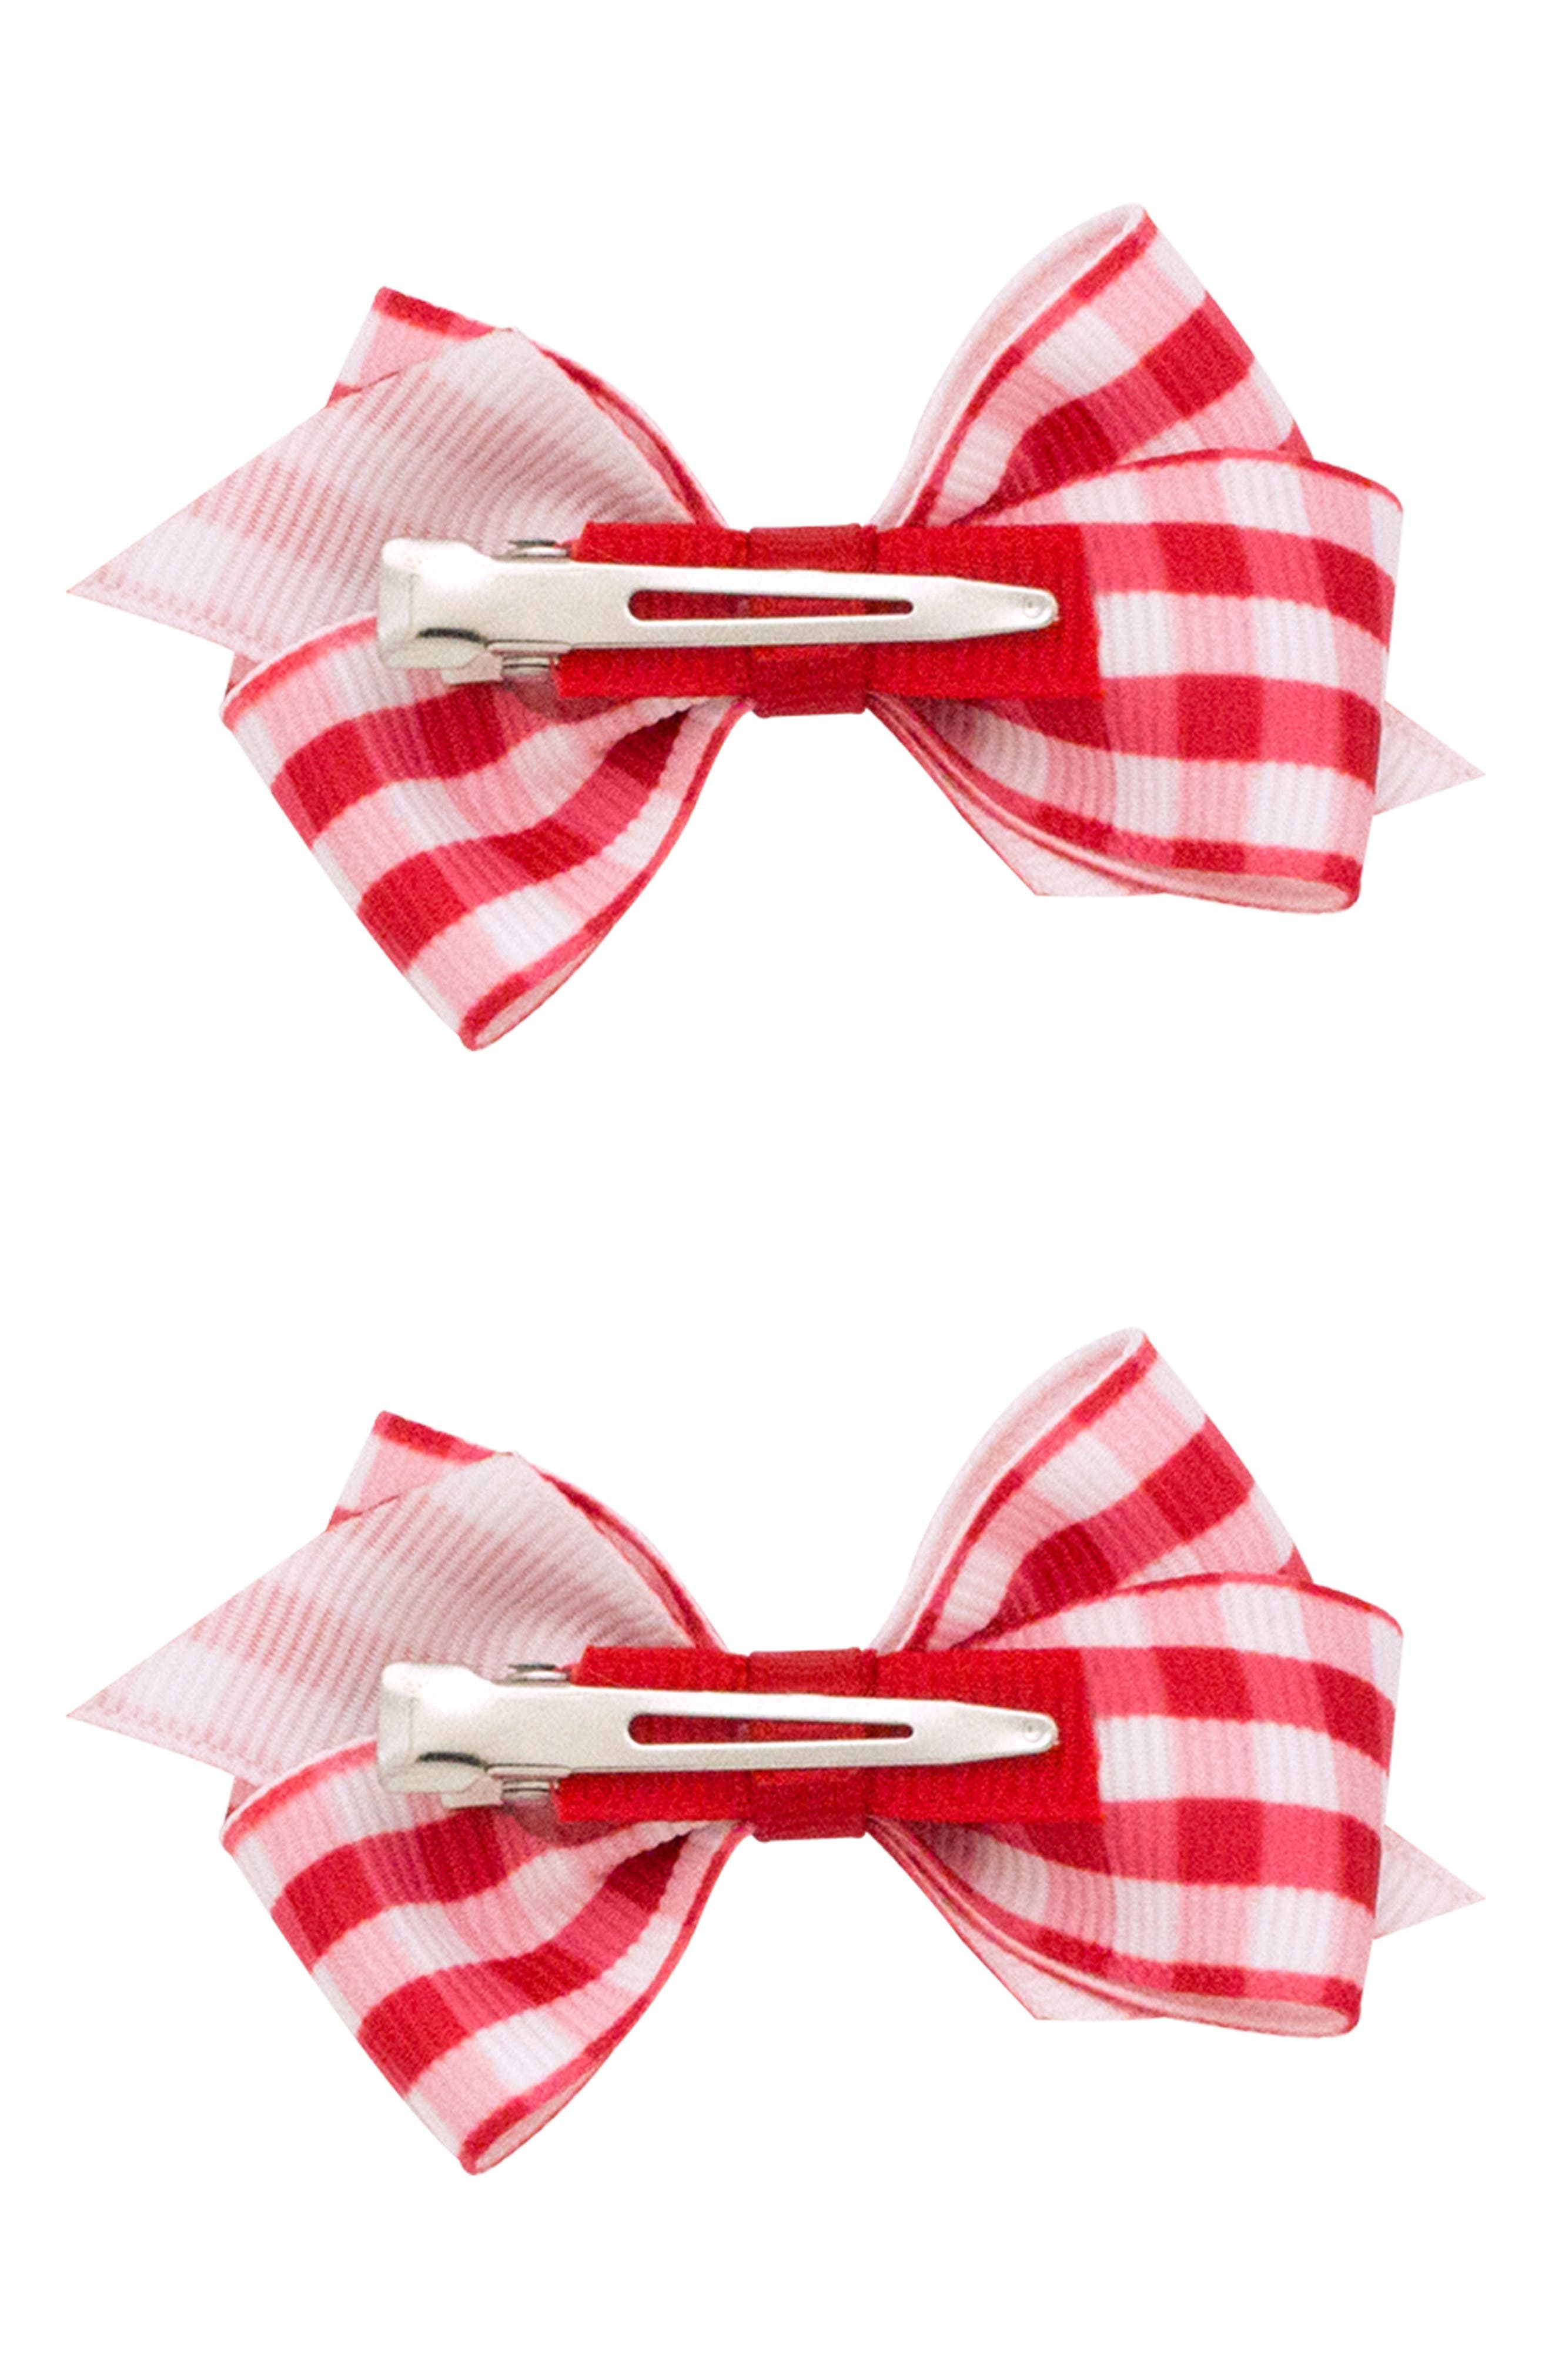 2-Pack Gingham Bow Clips,                             Alternate thumbnail 2, color,                             Red